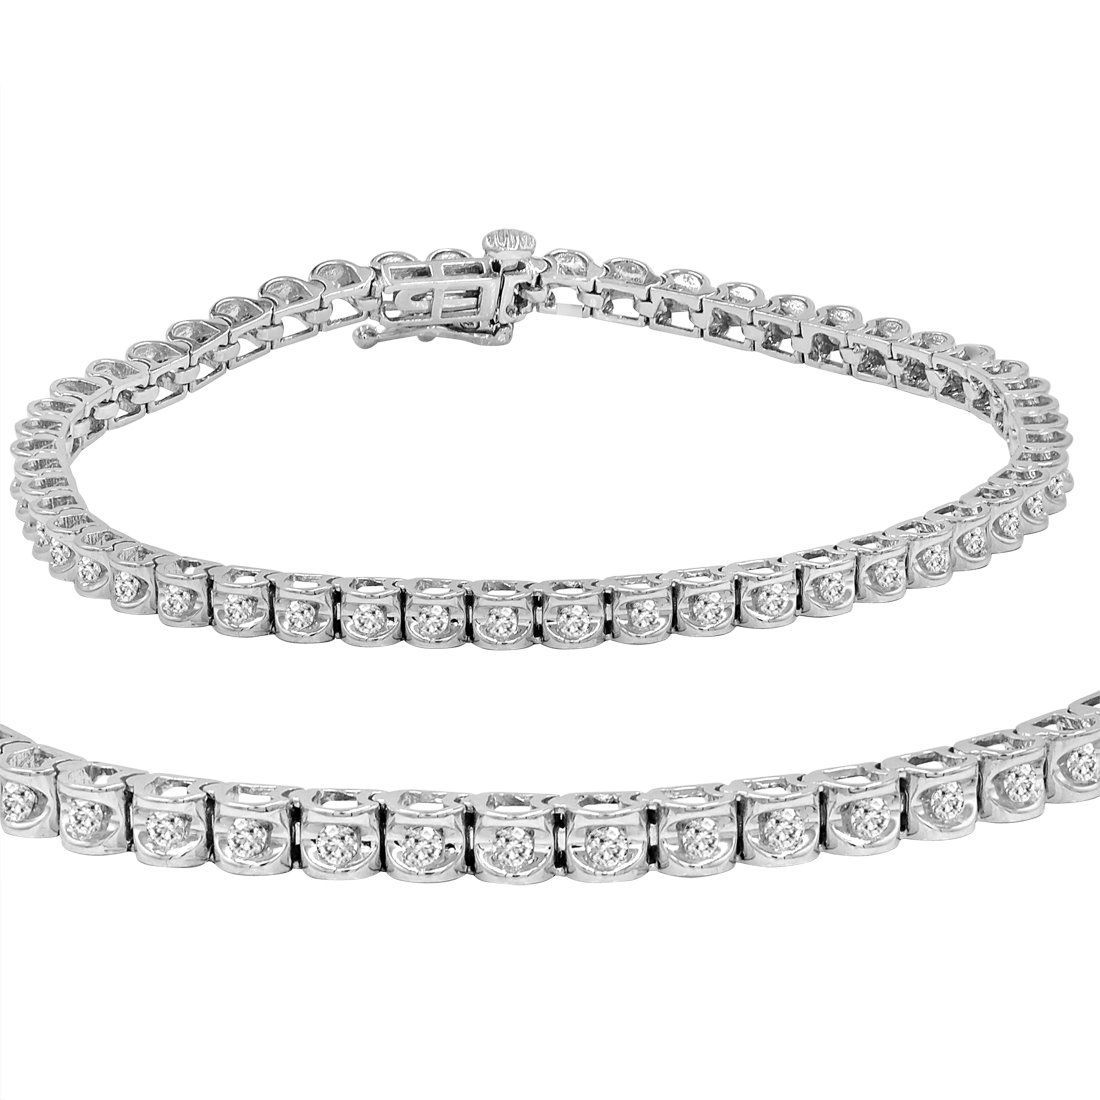 1 Carat Of Diamonds Set In A 7 Inch Diamond Tennis Bracelet Certified By The American Gem Society Tennis Bracelet Diamond Turquoise Sterling Silver Jewelry